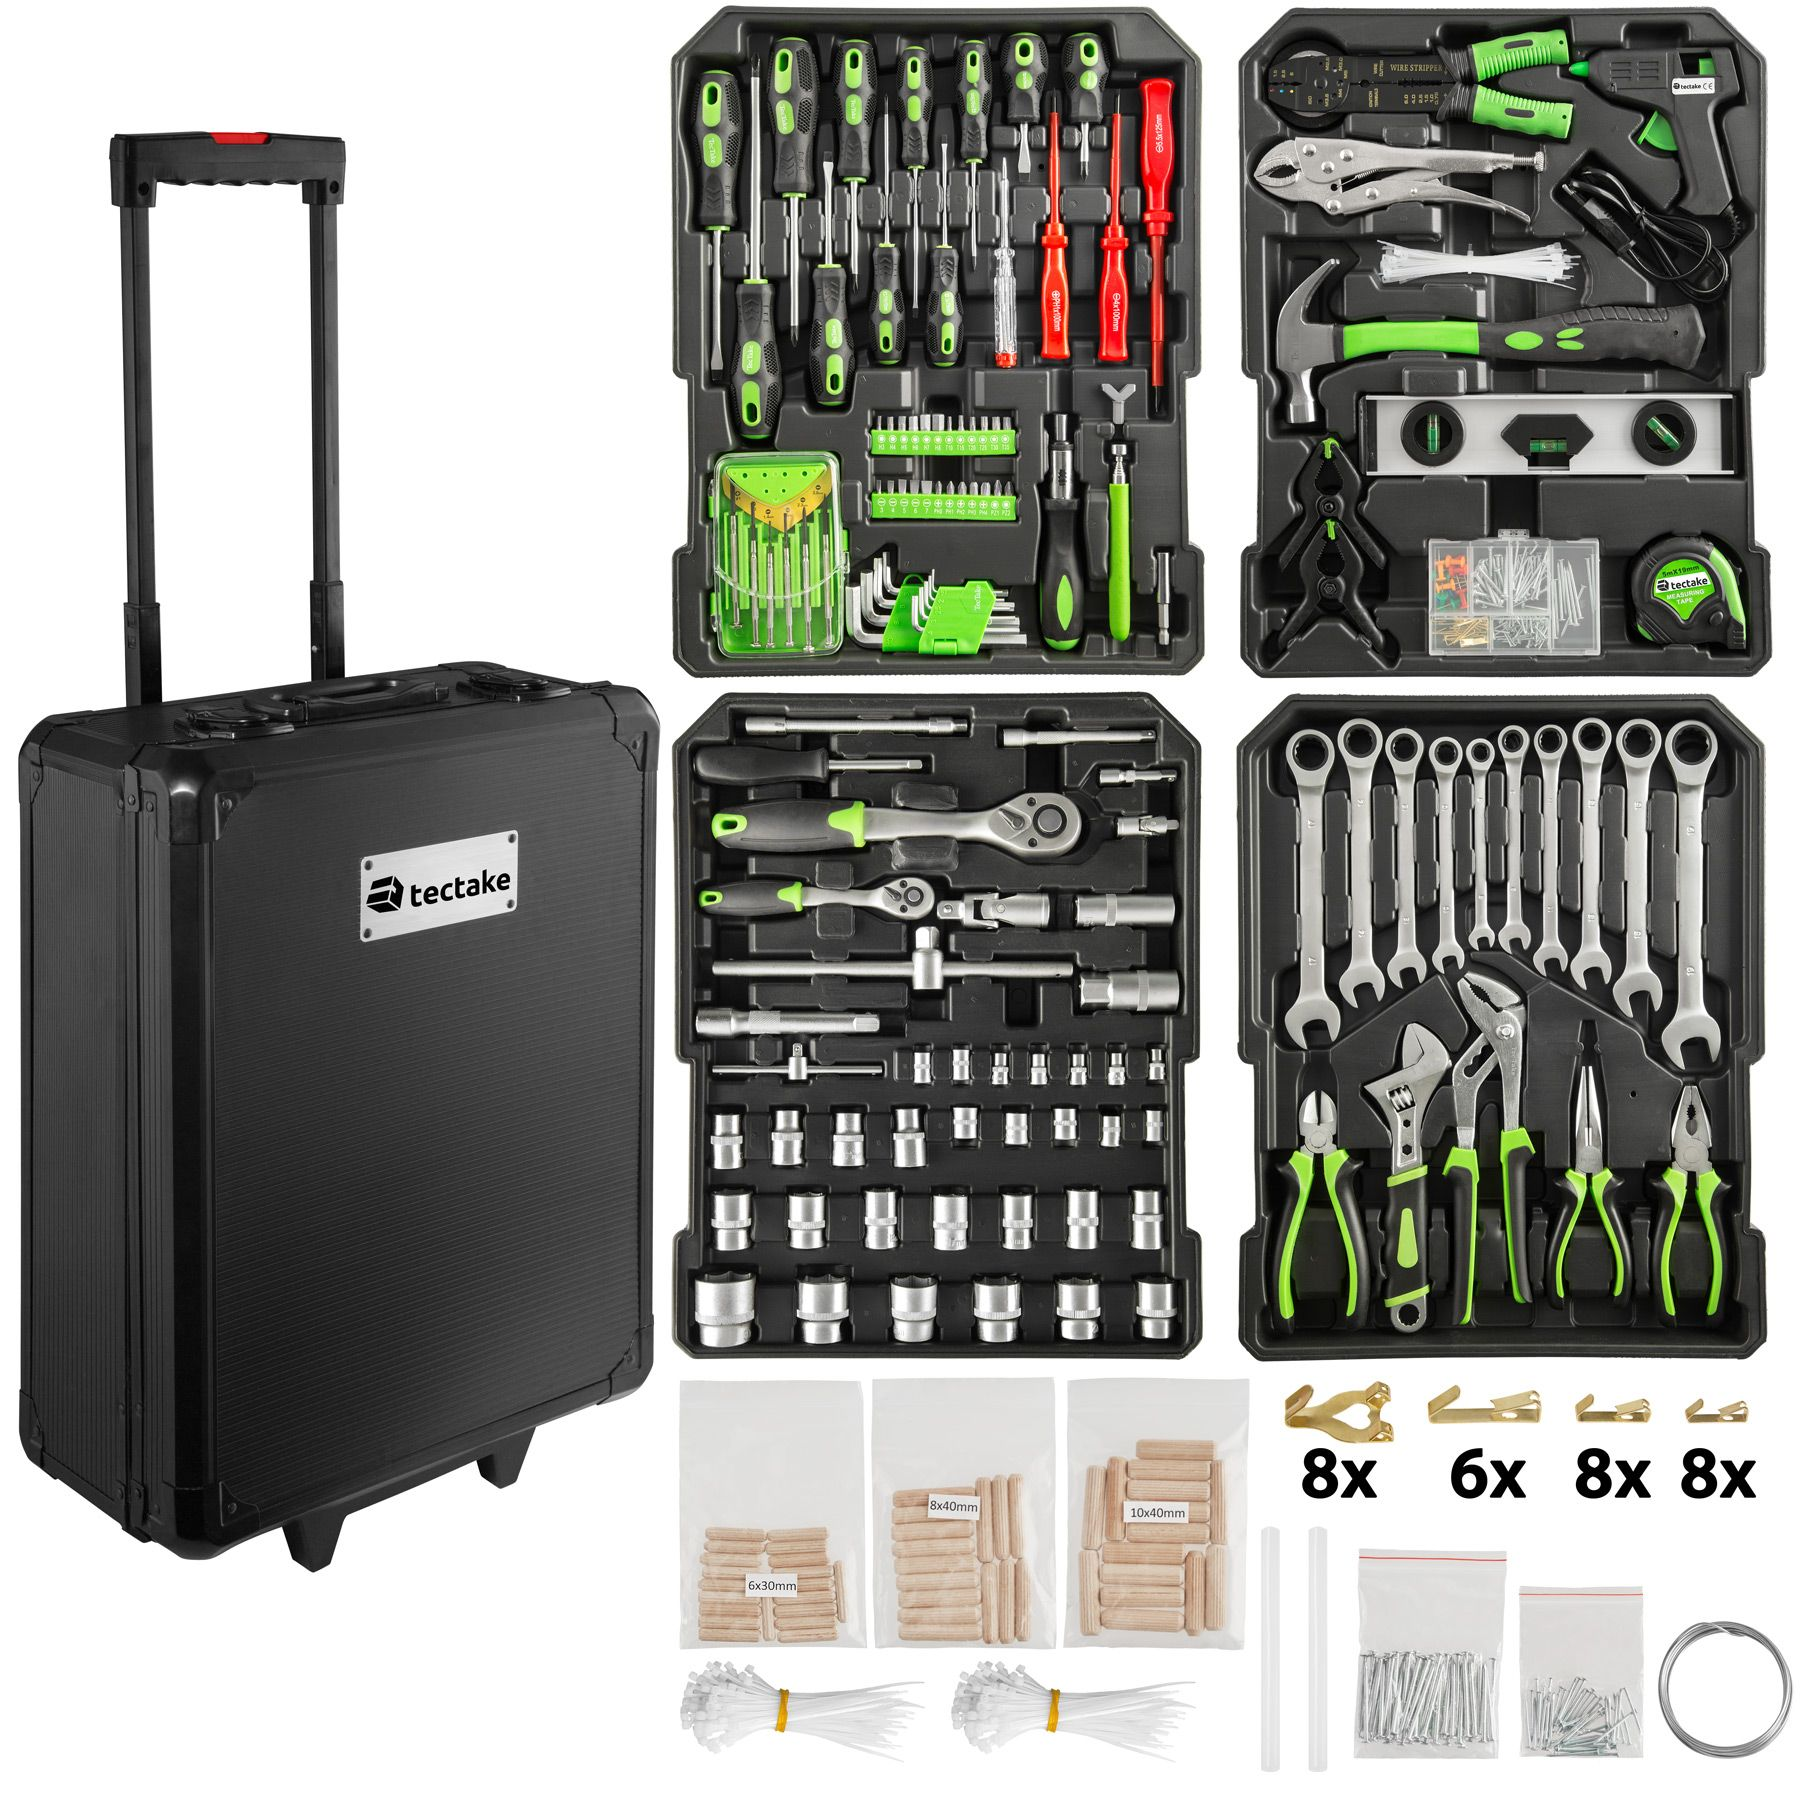 valise outils trolley 899 pi ces boite mallette tire. Black Bedroom Furniture Sets. Home Design Ideas